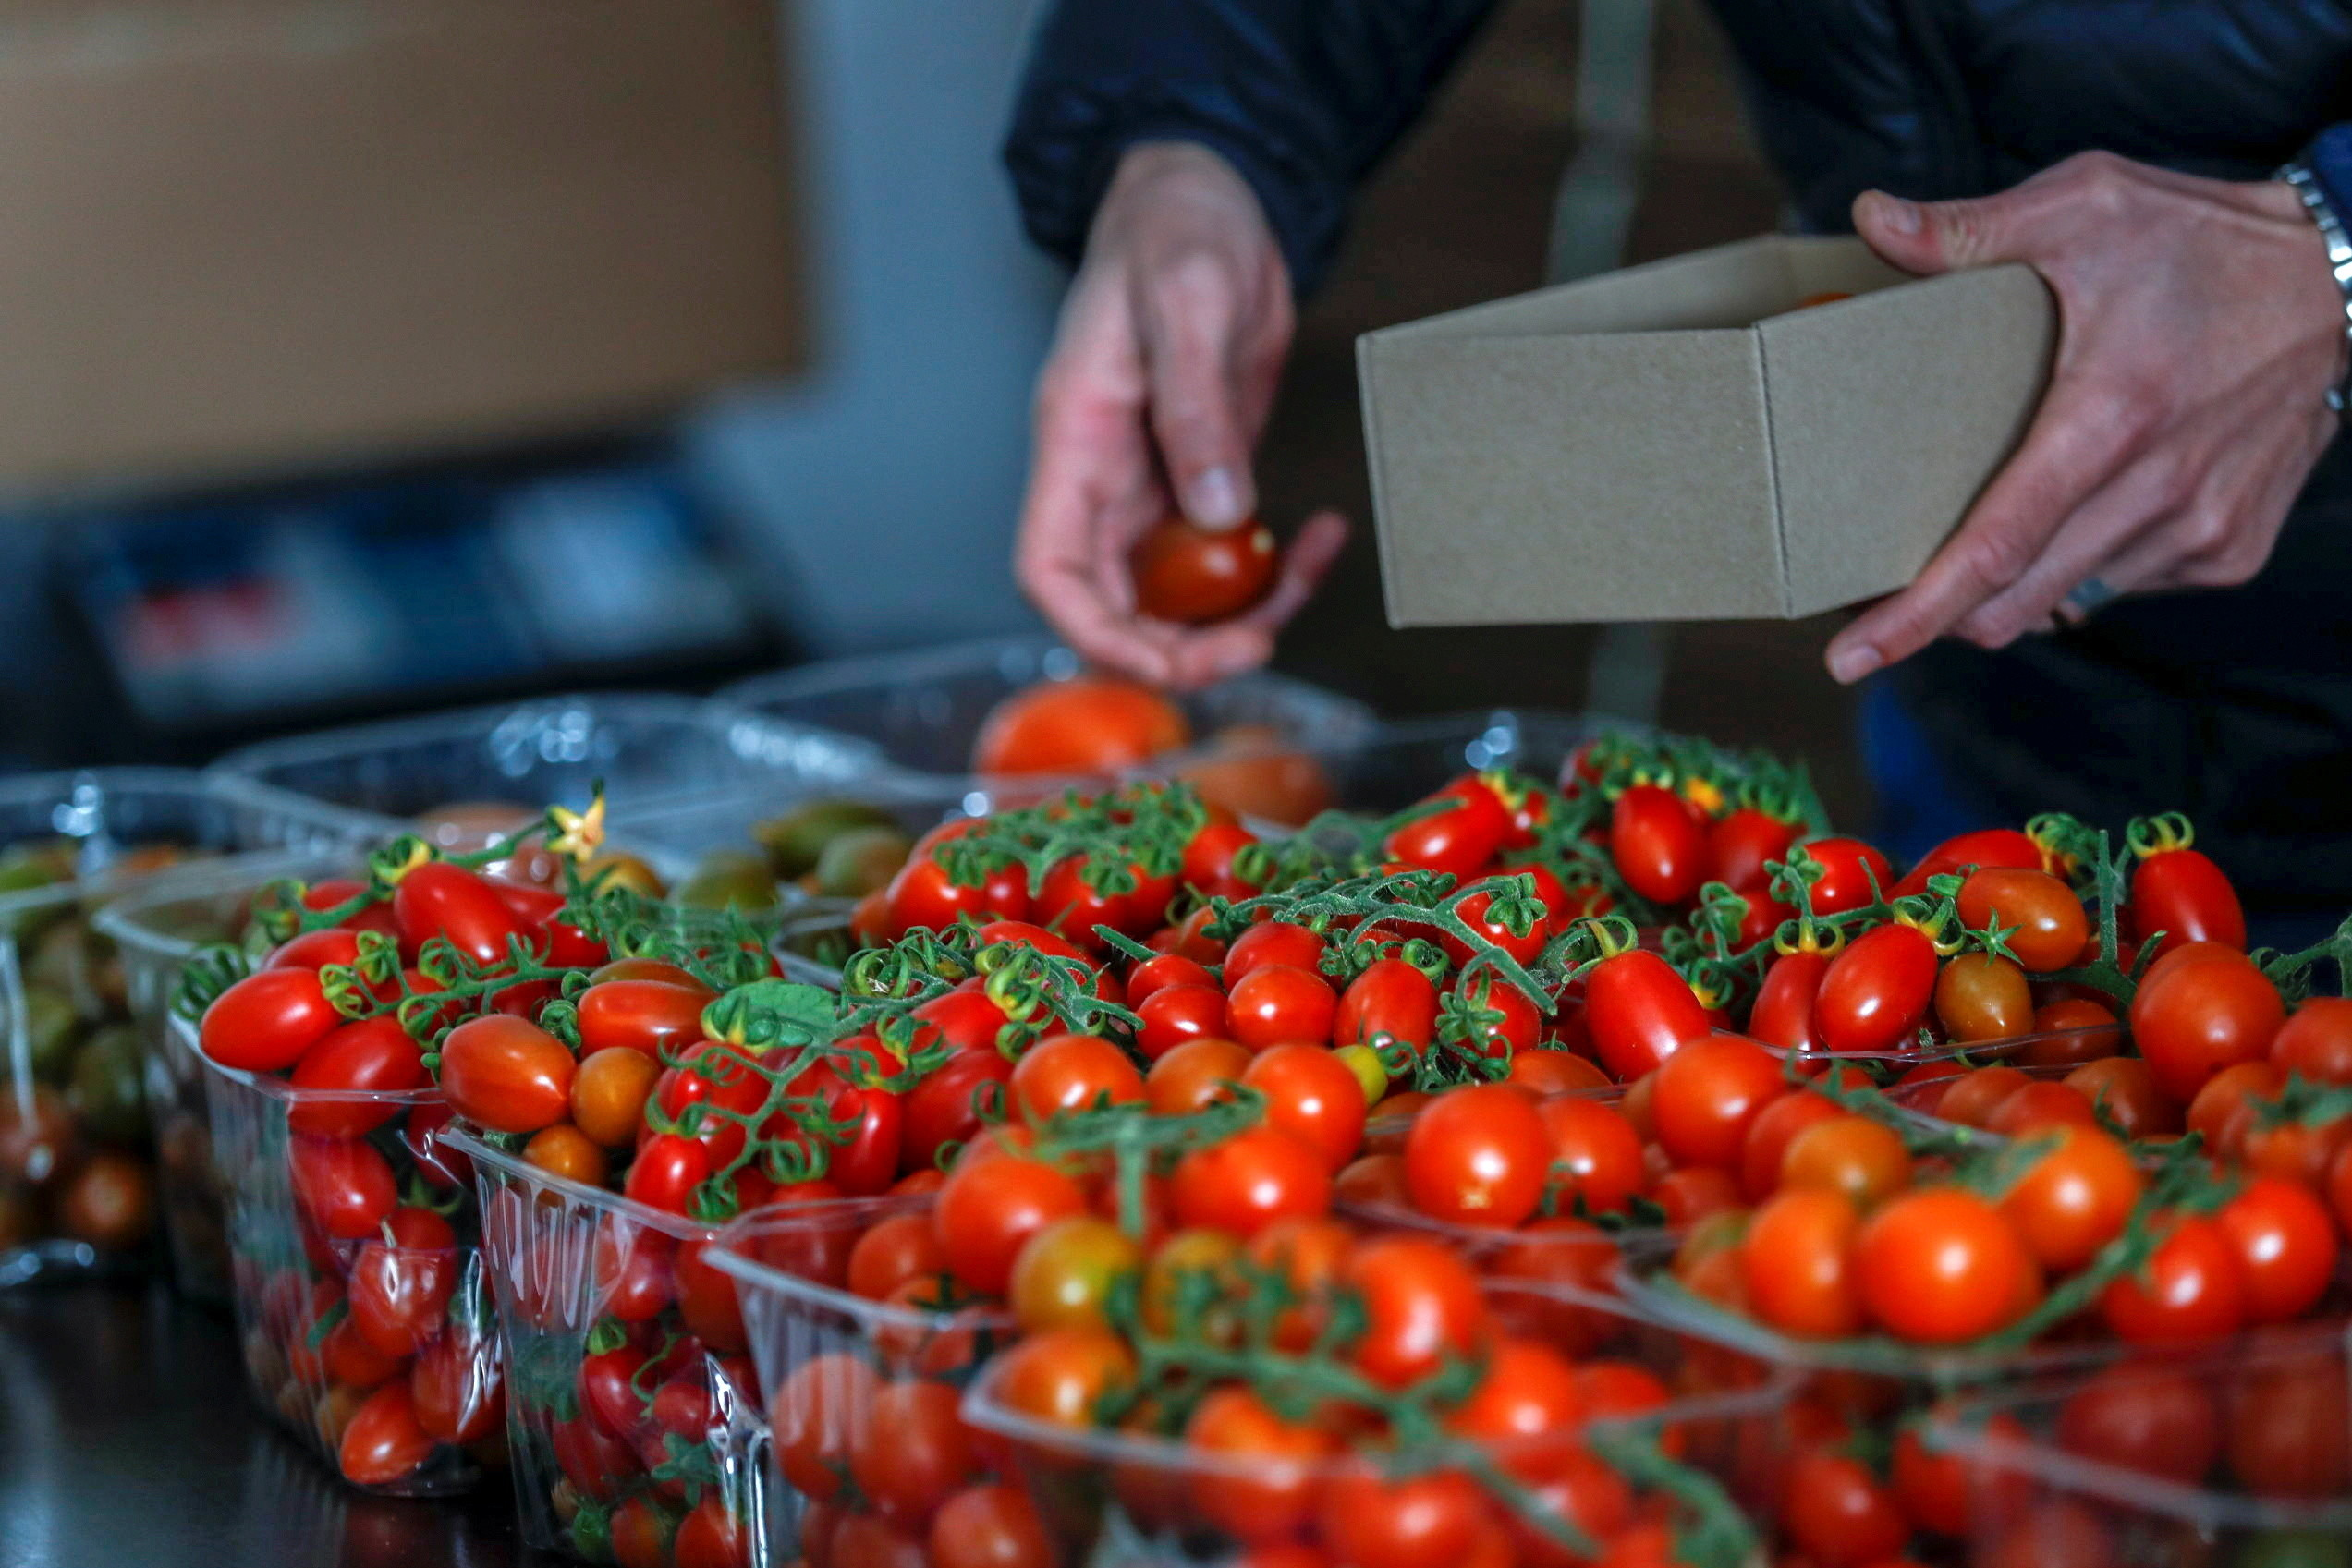 A Palestinian man packages tomatoes which Palestinian entrepreneurs market online and deliver to customers, in Ramallah in the Israeli-occupied West Bank March 4, 2021. Picture taken March 4, 2021.  REUTERS/Mohamad Torokman - RC298M9GRN20